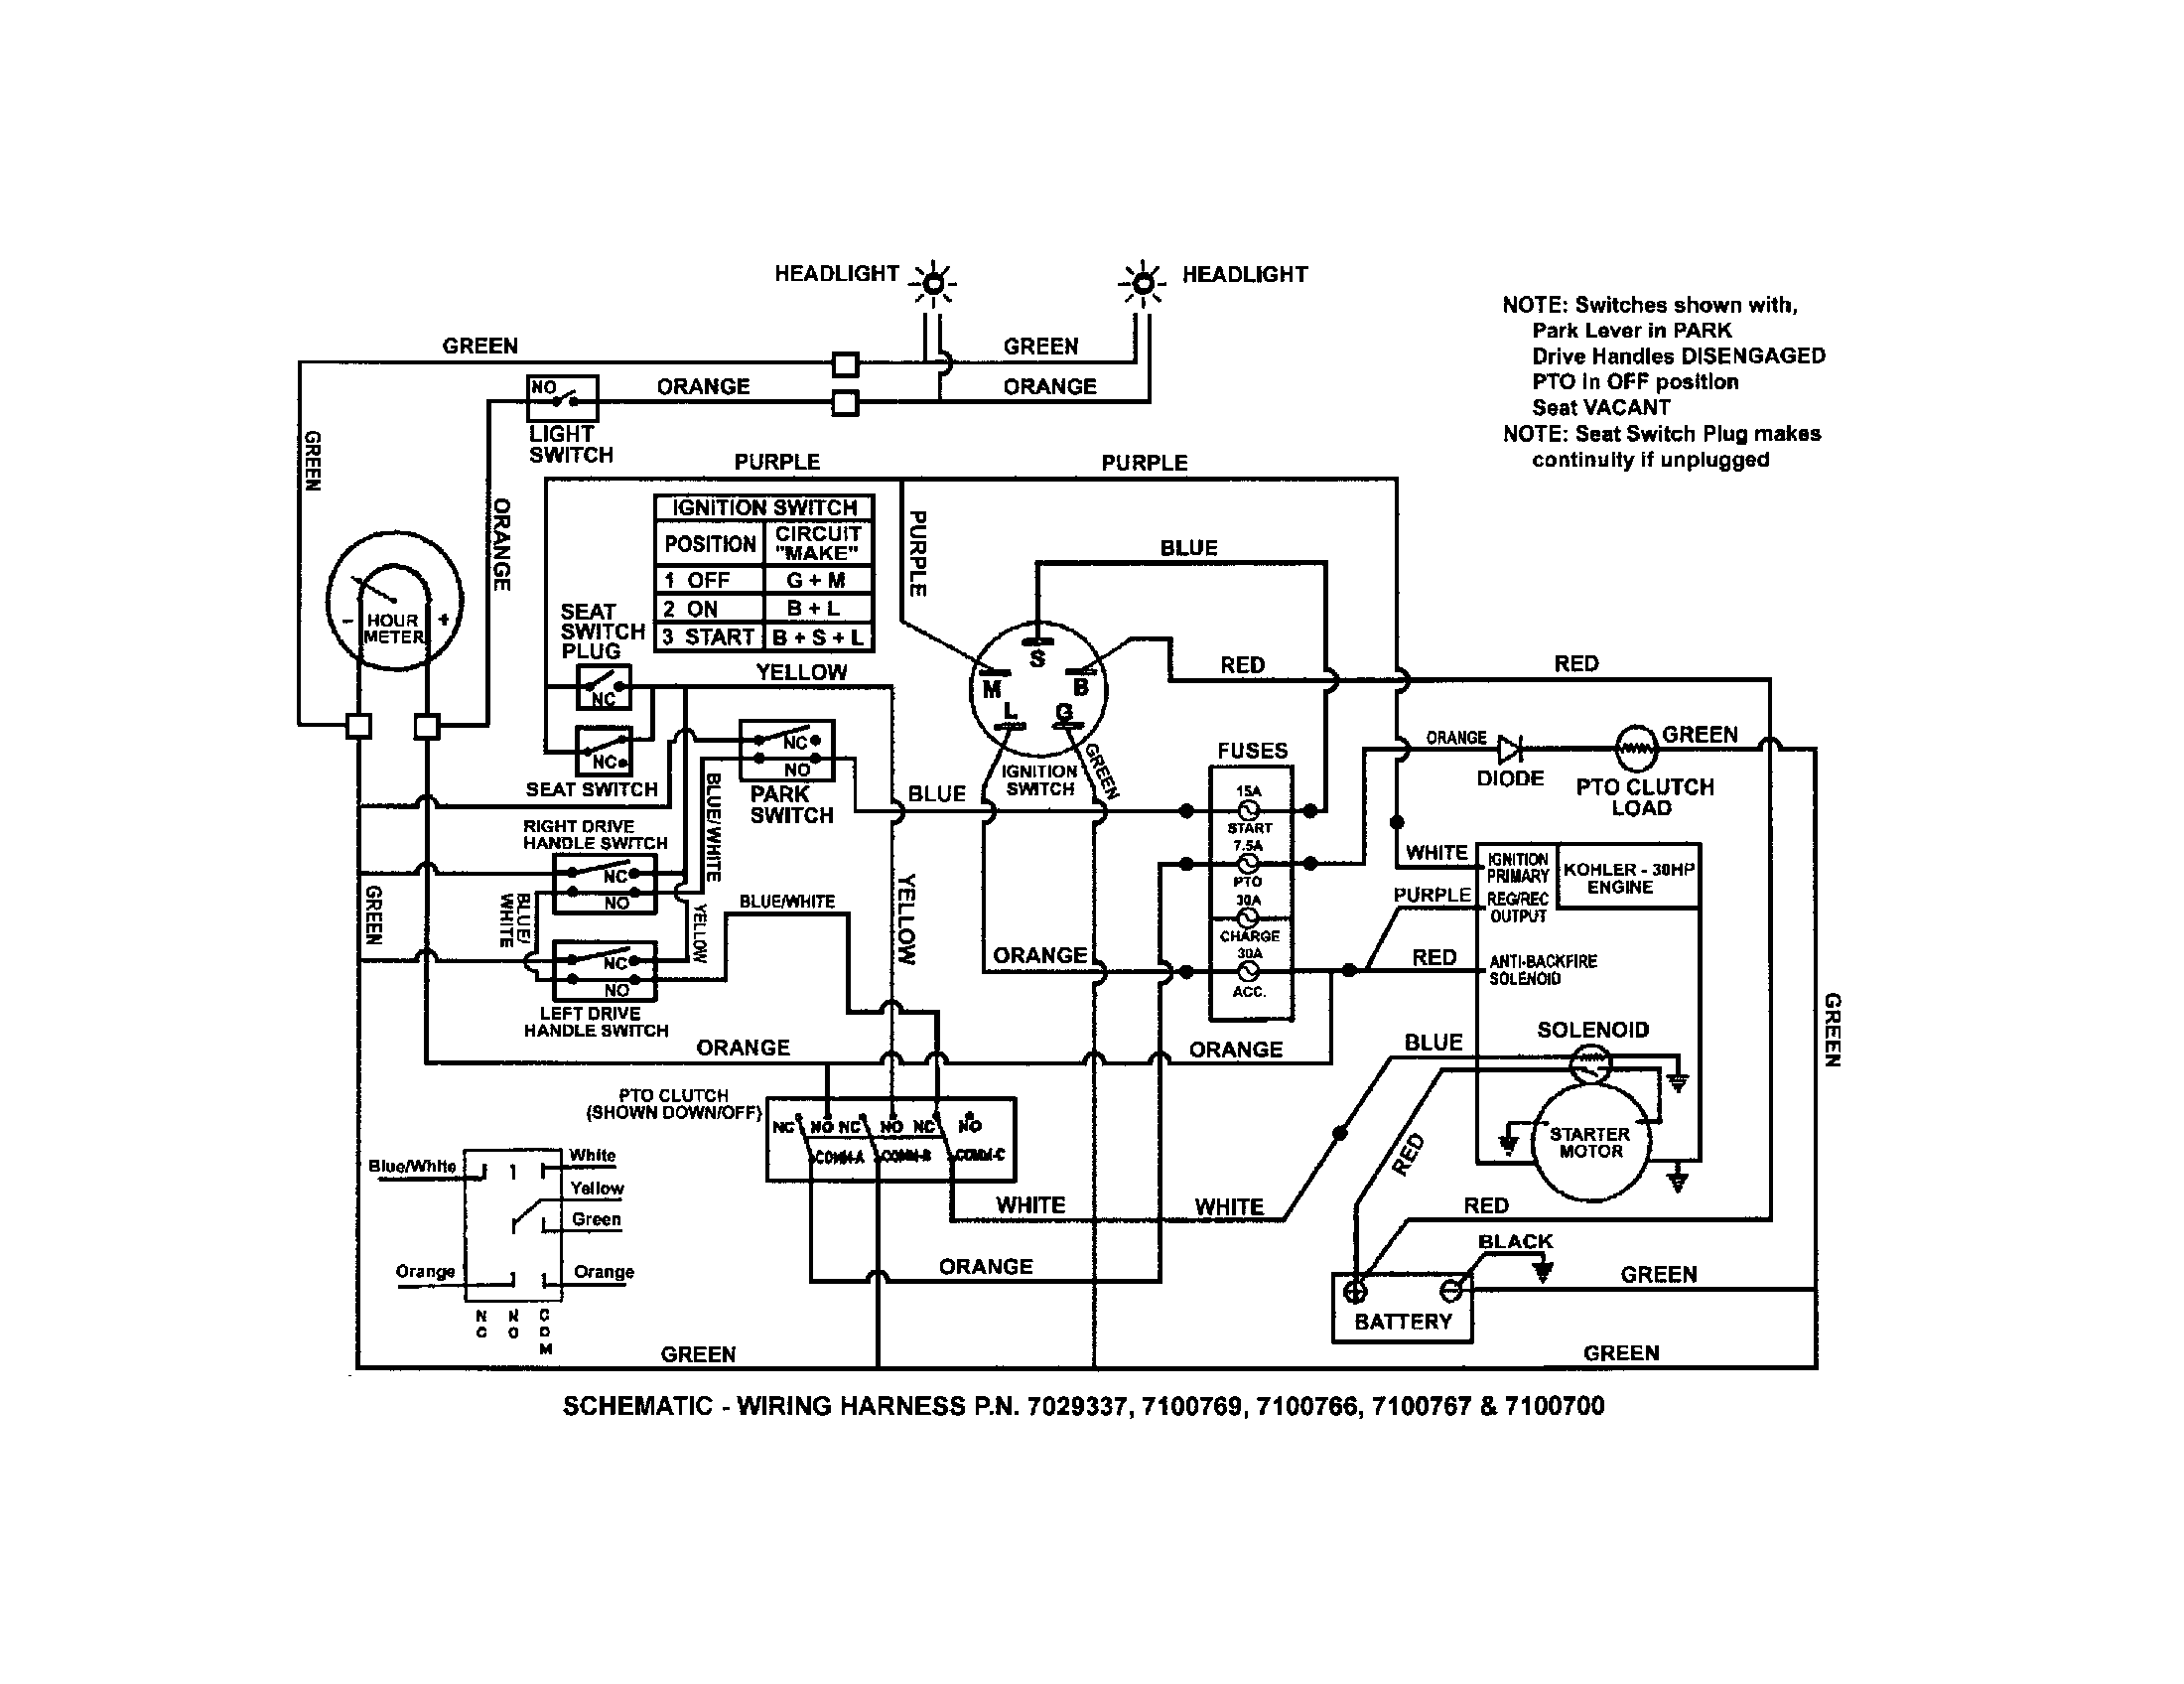 1957 Chevy Headlight Switch Wiring Diagram Opinions About Wiring 1955 Chevy  Wiring Diagram 1957 Chevy Fuse Box Wiring Diagram